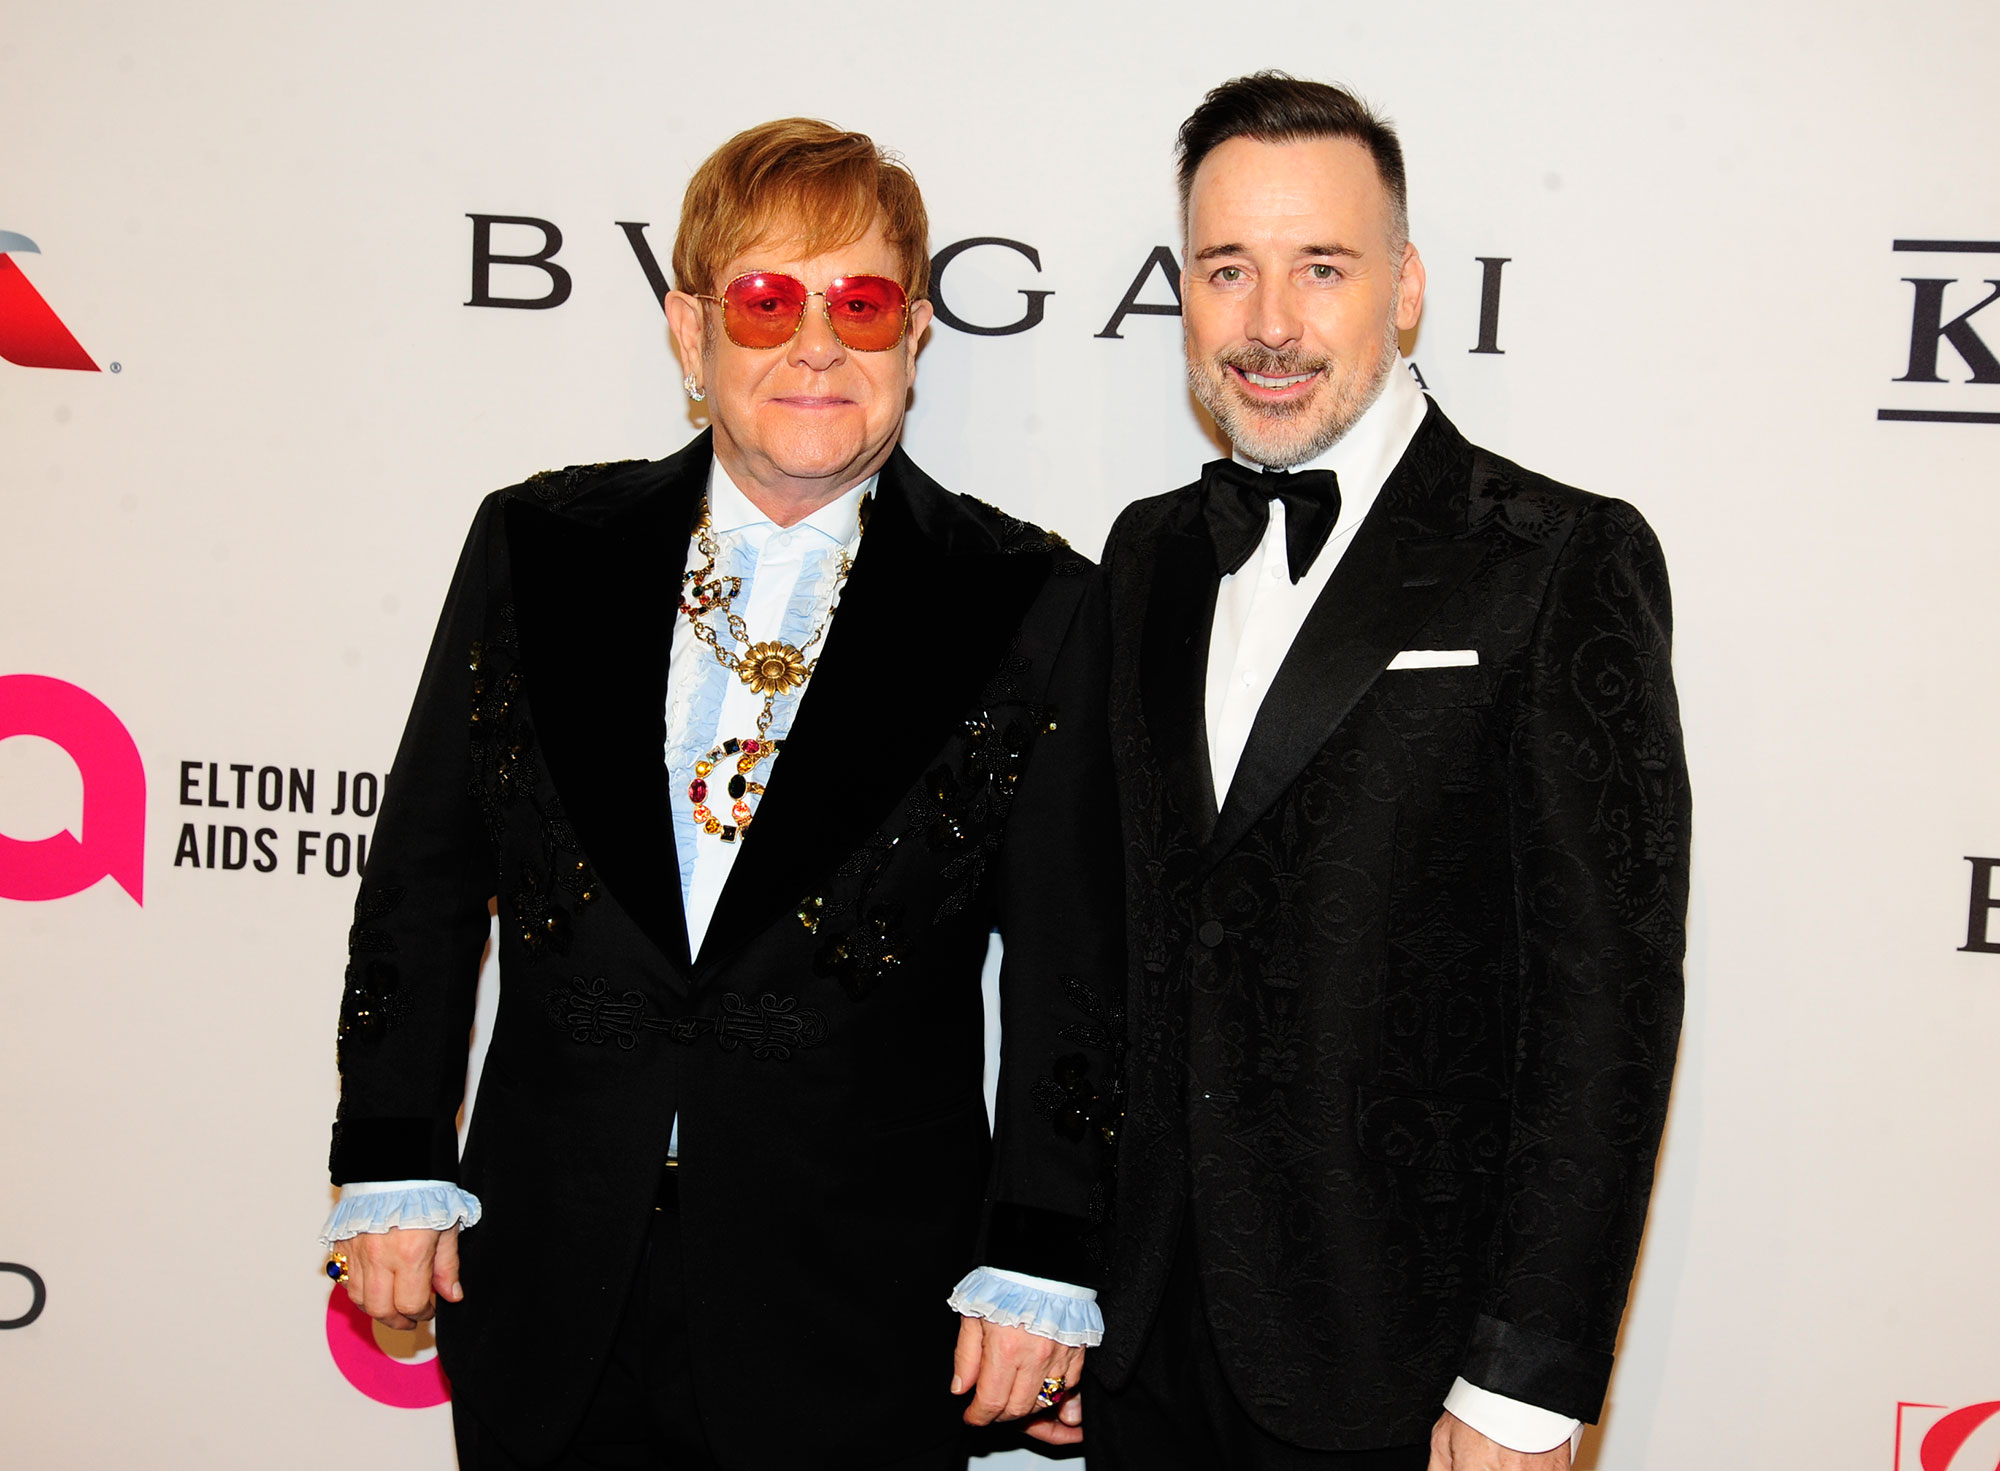 Elton John AIDS Foundation's 17th Annual An Enduring Vision Benefit